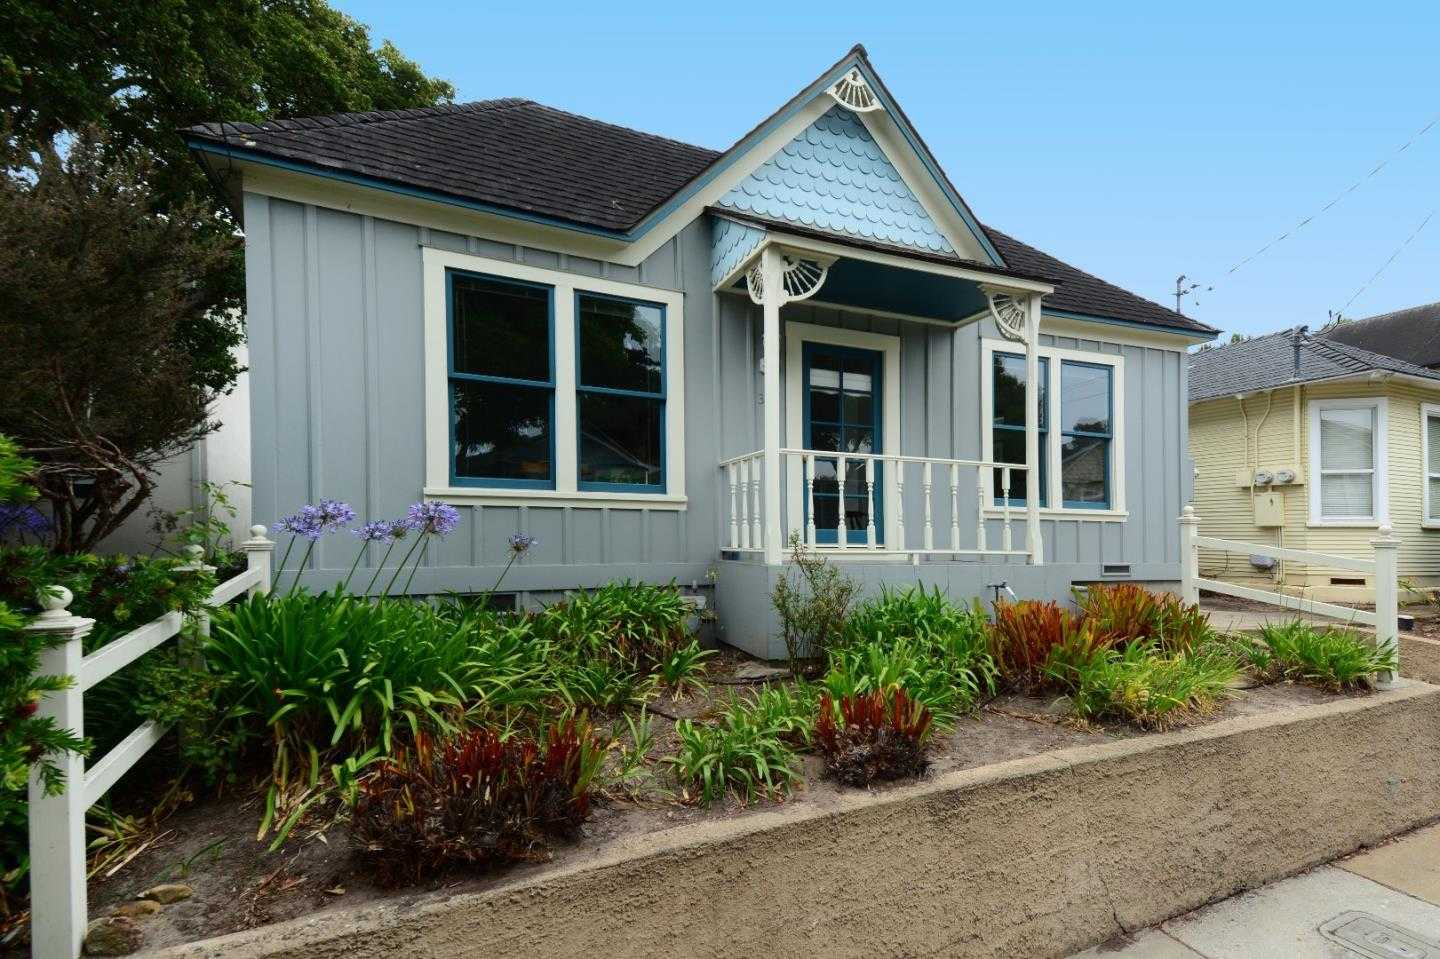 $777,500 - 2Br/1Ba -  for Sale in Pacific Grove